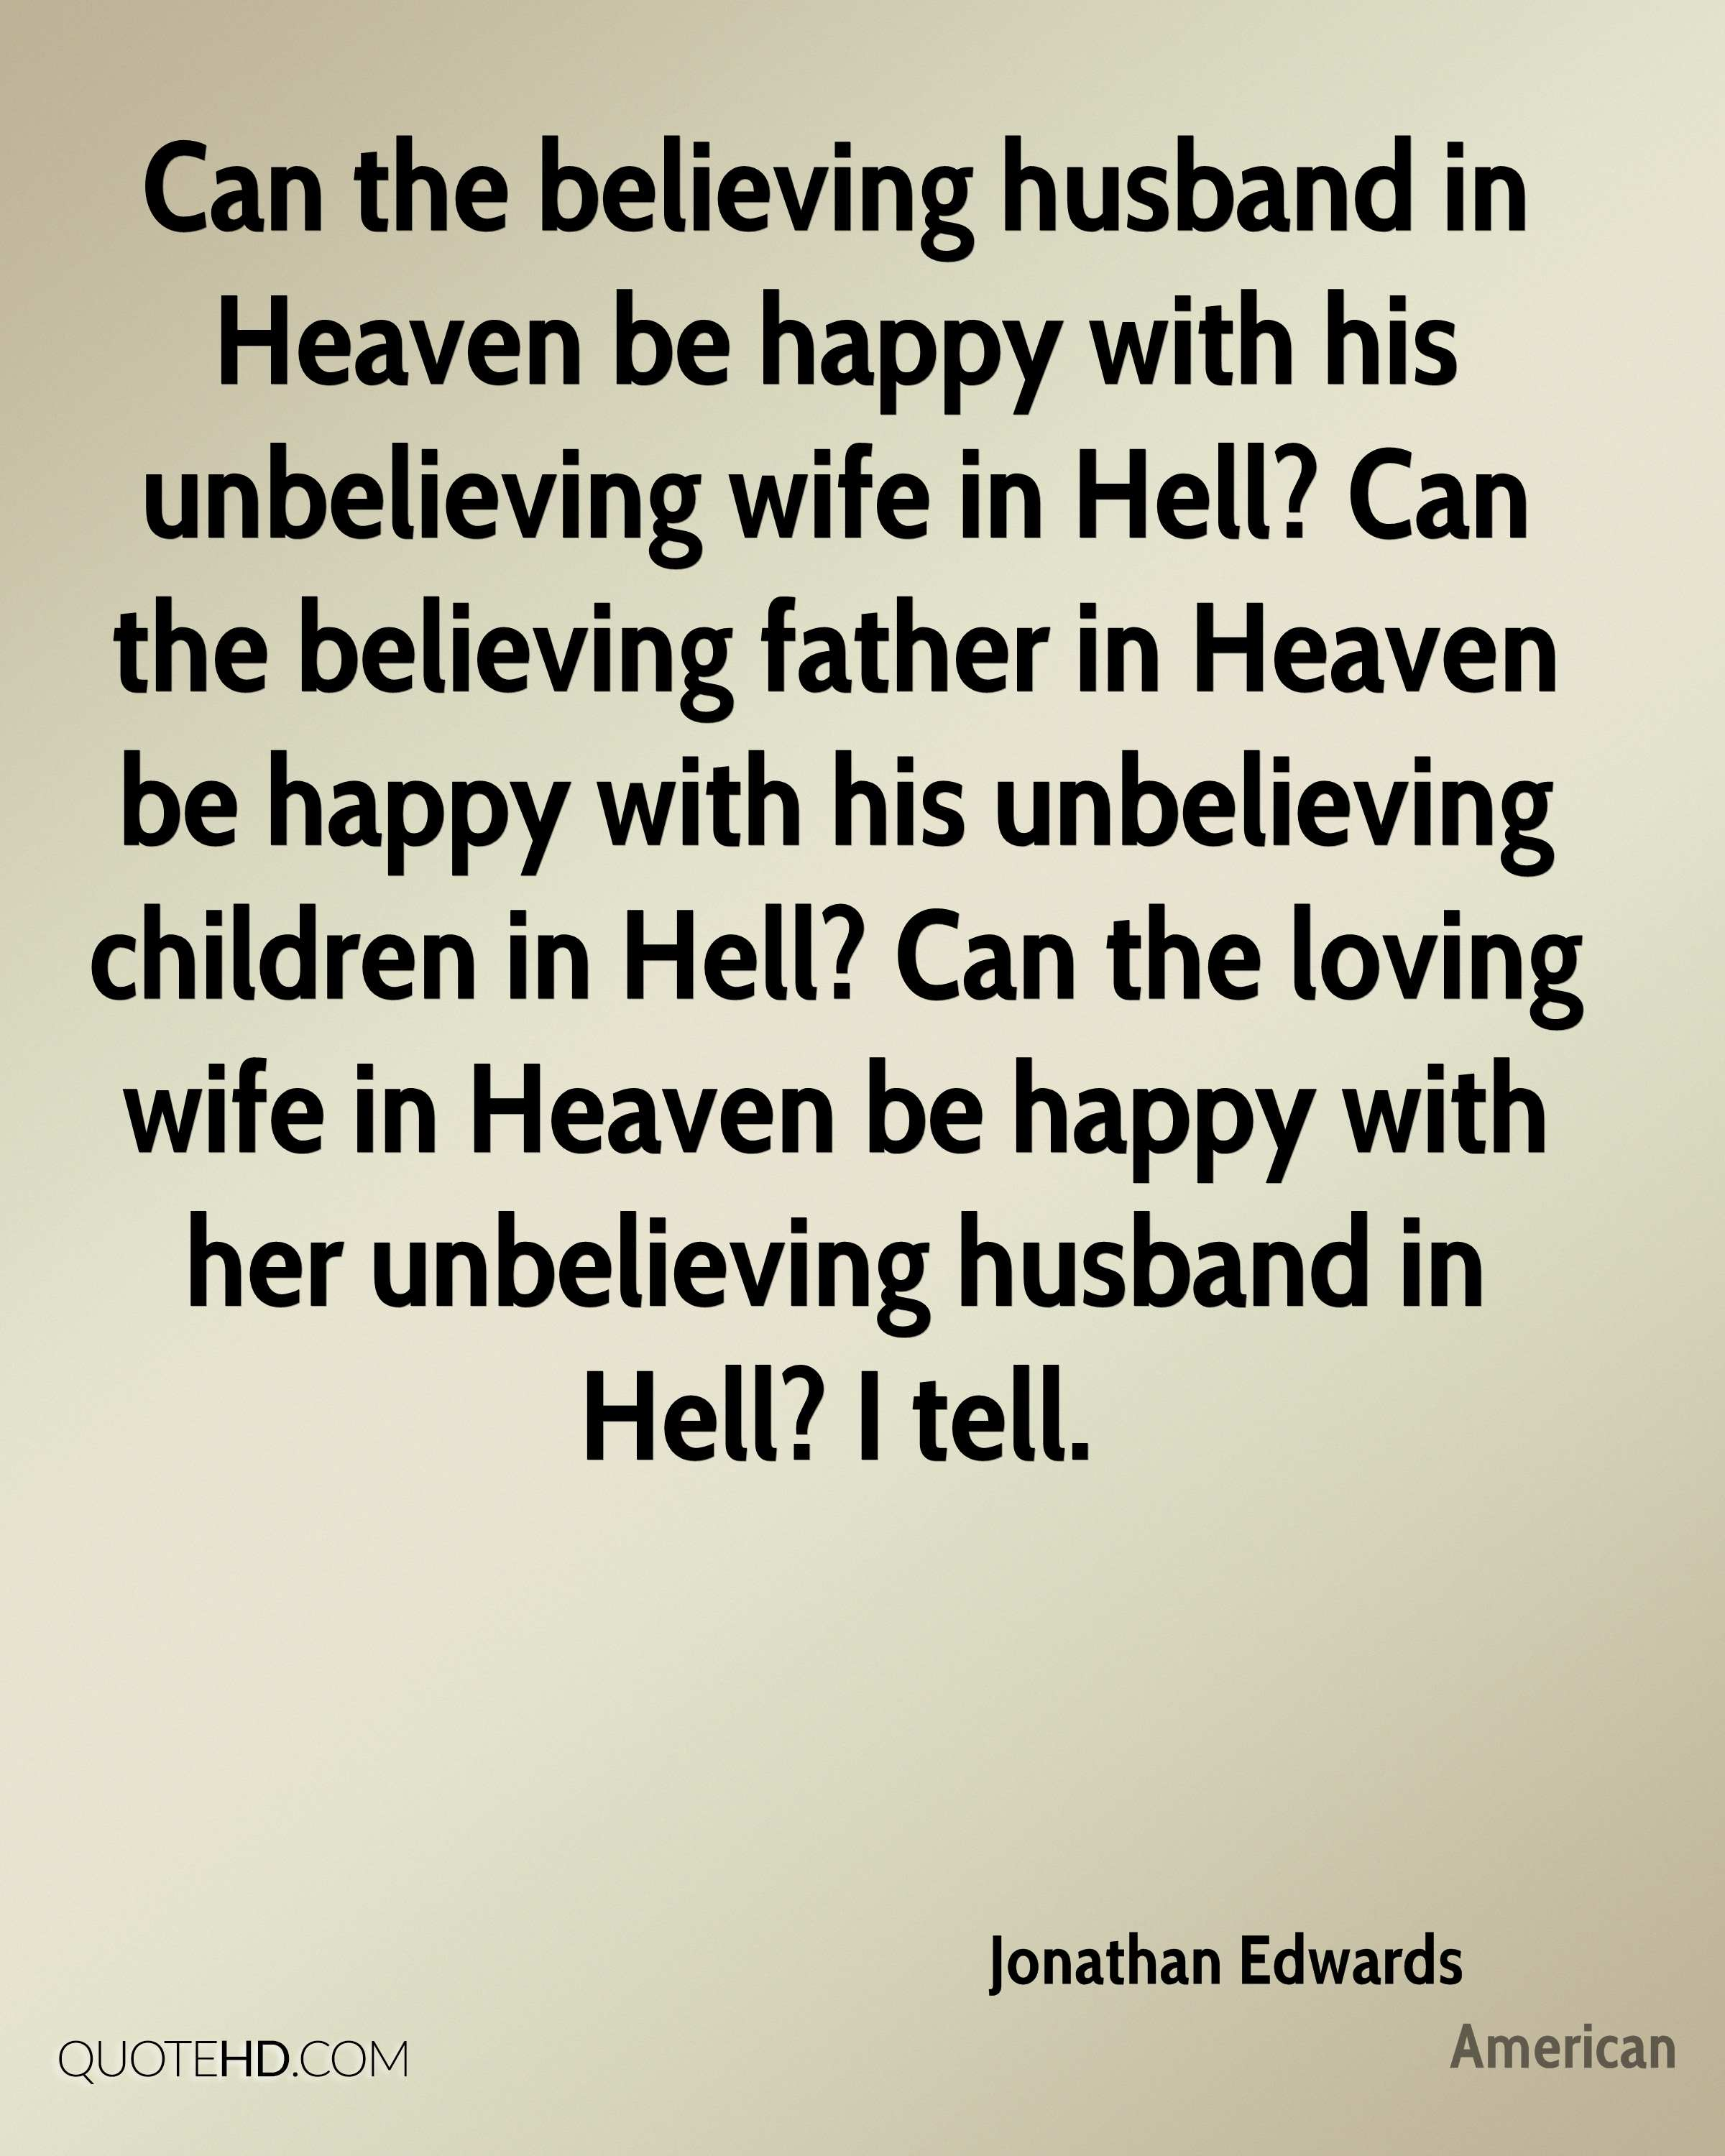 Can the believing husband in Heaven be happy with his unbelieving wife in Hell? Can the believing father in Heaven be happy with his unbelieving children in Hell? Can the loving wife in Heaven be happy with her unbelieving husband in Hell? I tell.